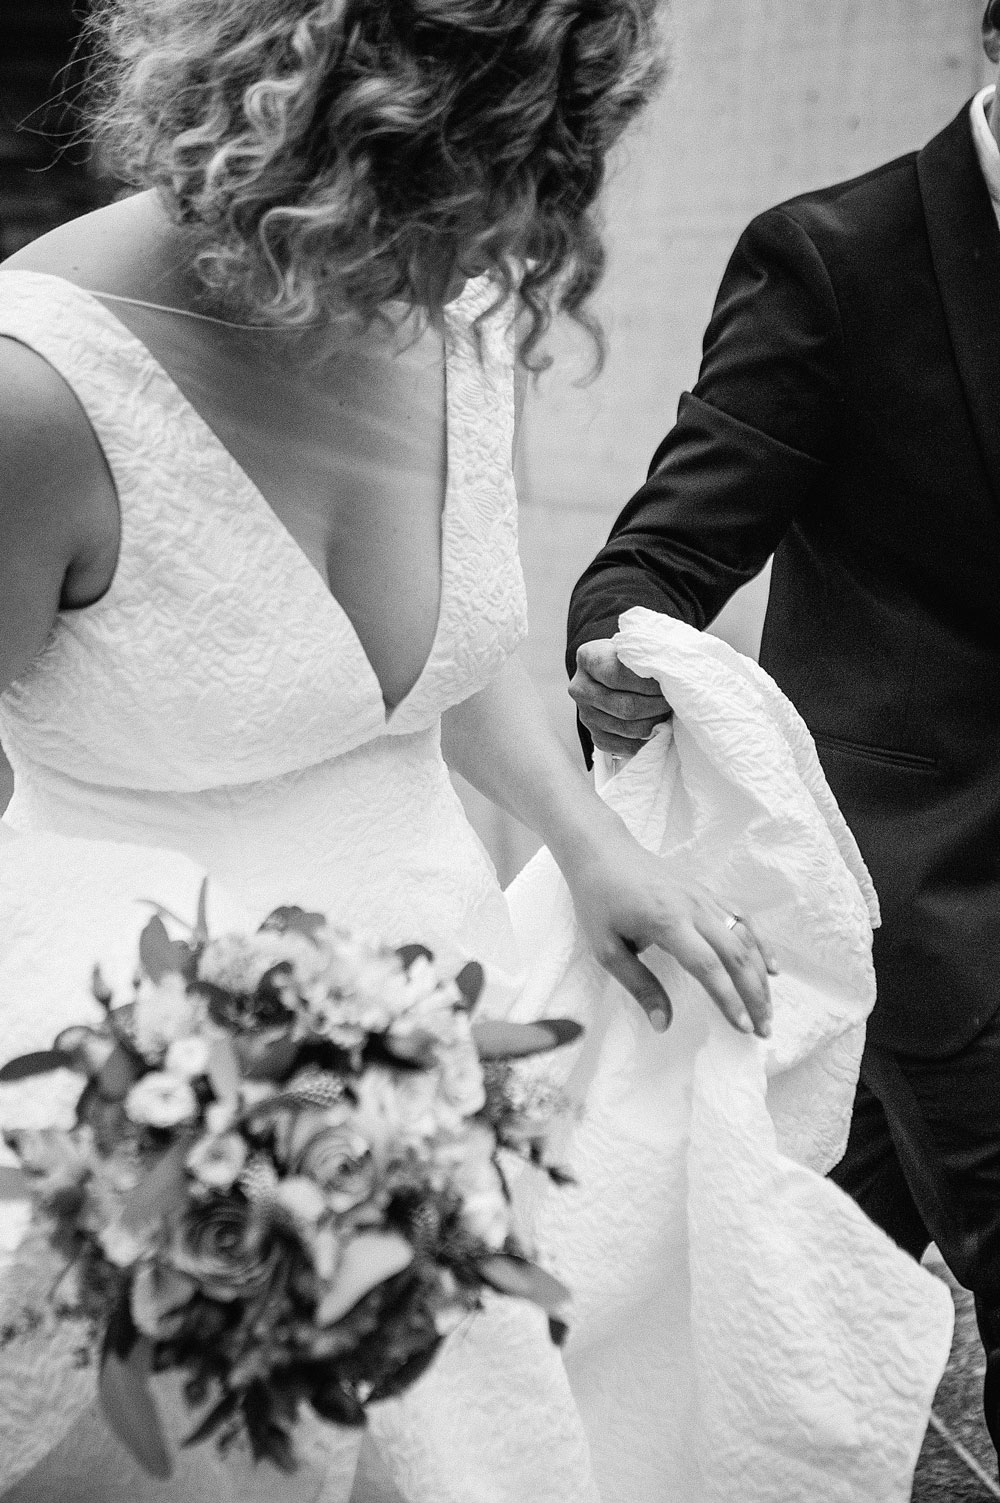 wedding_photographer_zermatt_41.jpg